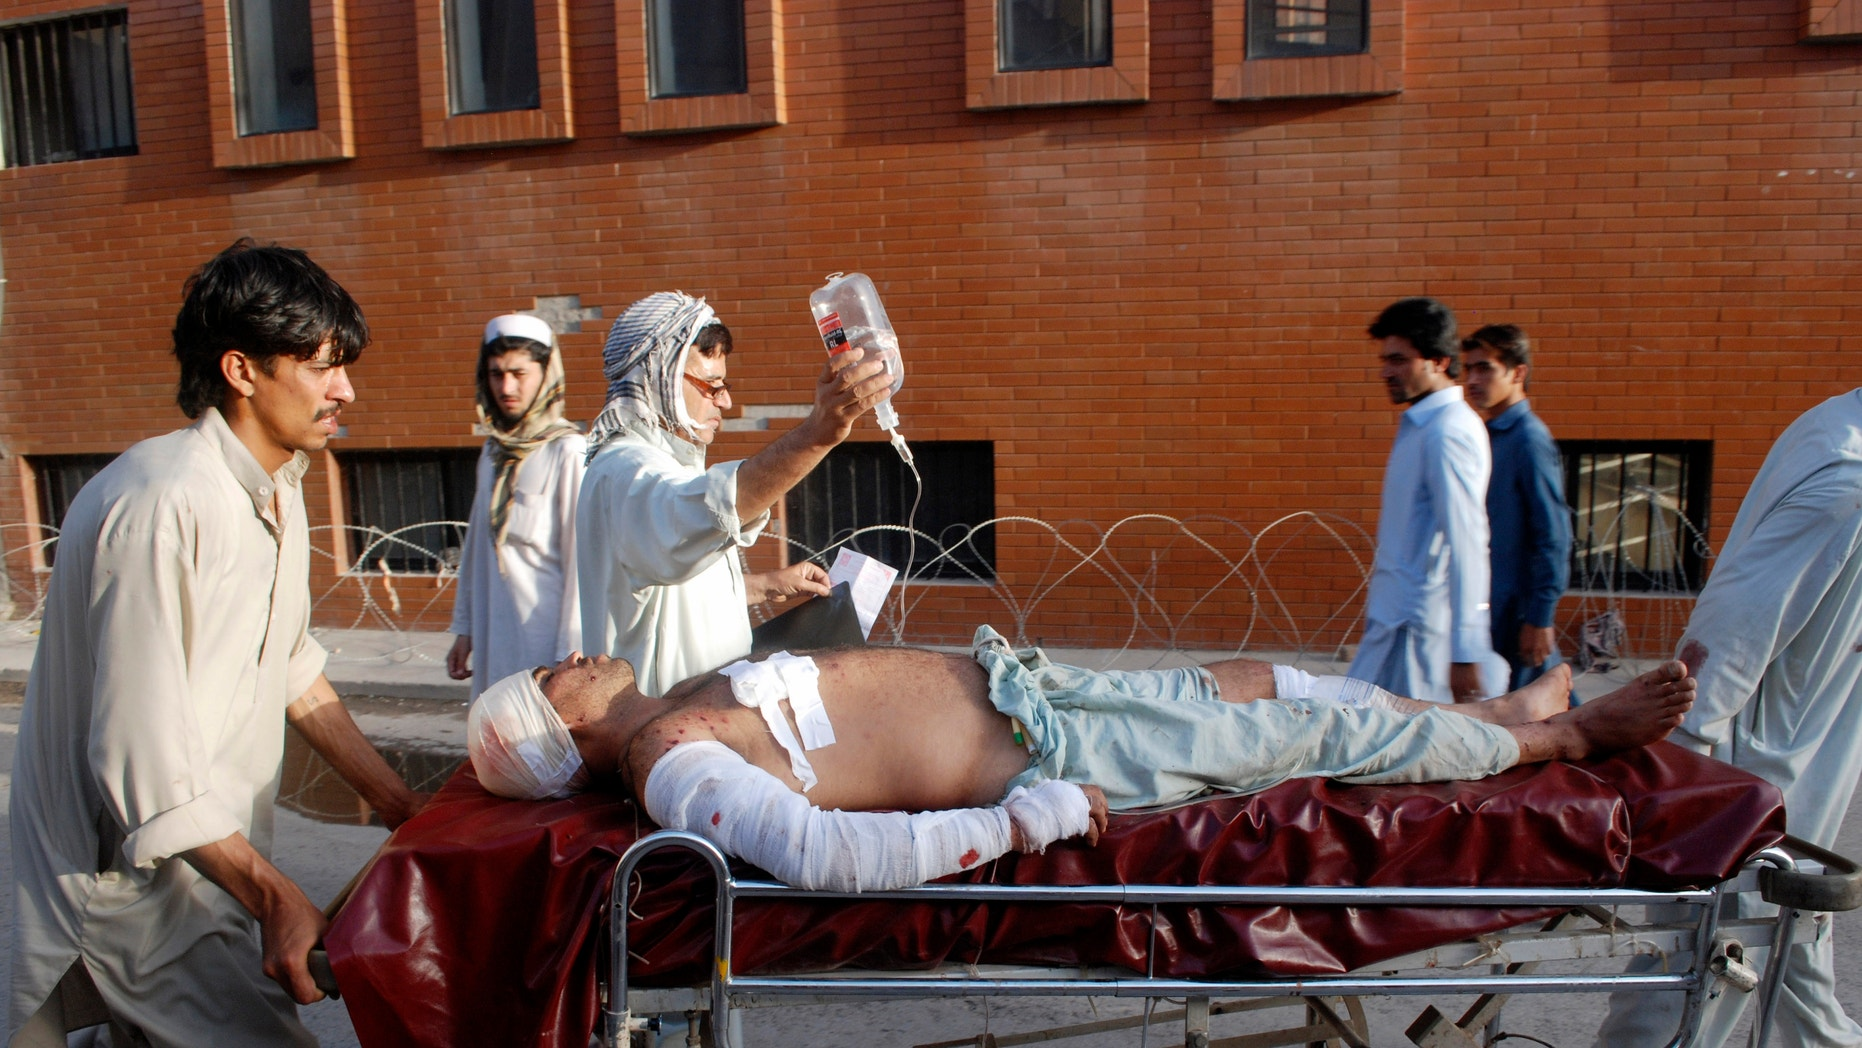 May 17, 2013 - A Pakistani man injured in a bomb blast in a mosque in the Malakand district of Khyber Pakhtunkhwa province, is brought to a hospital in Peshawar, Pakistan.